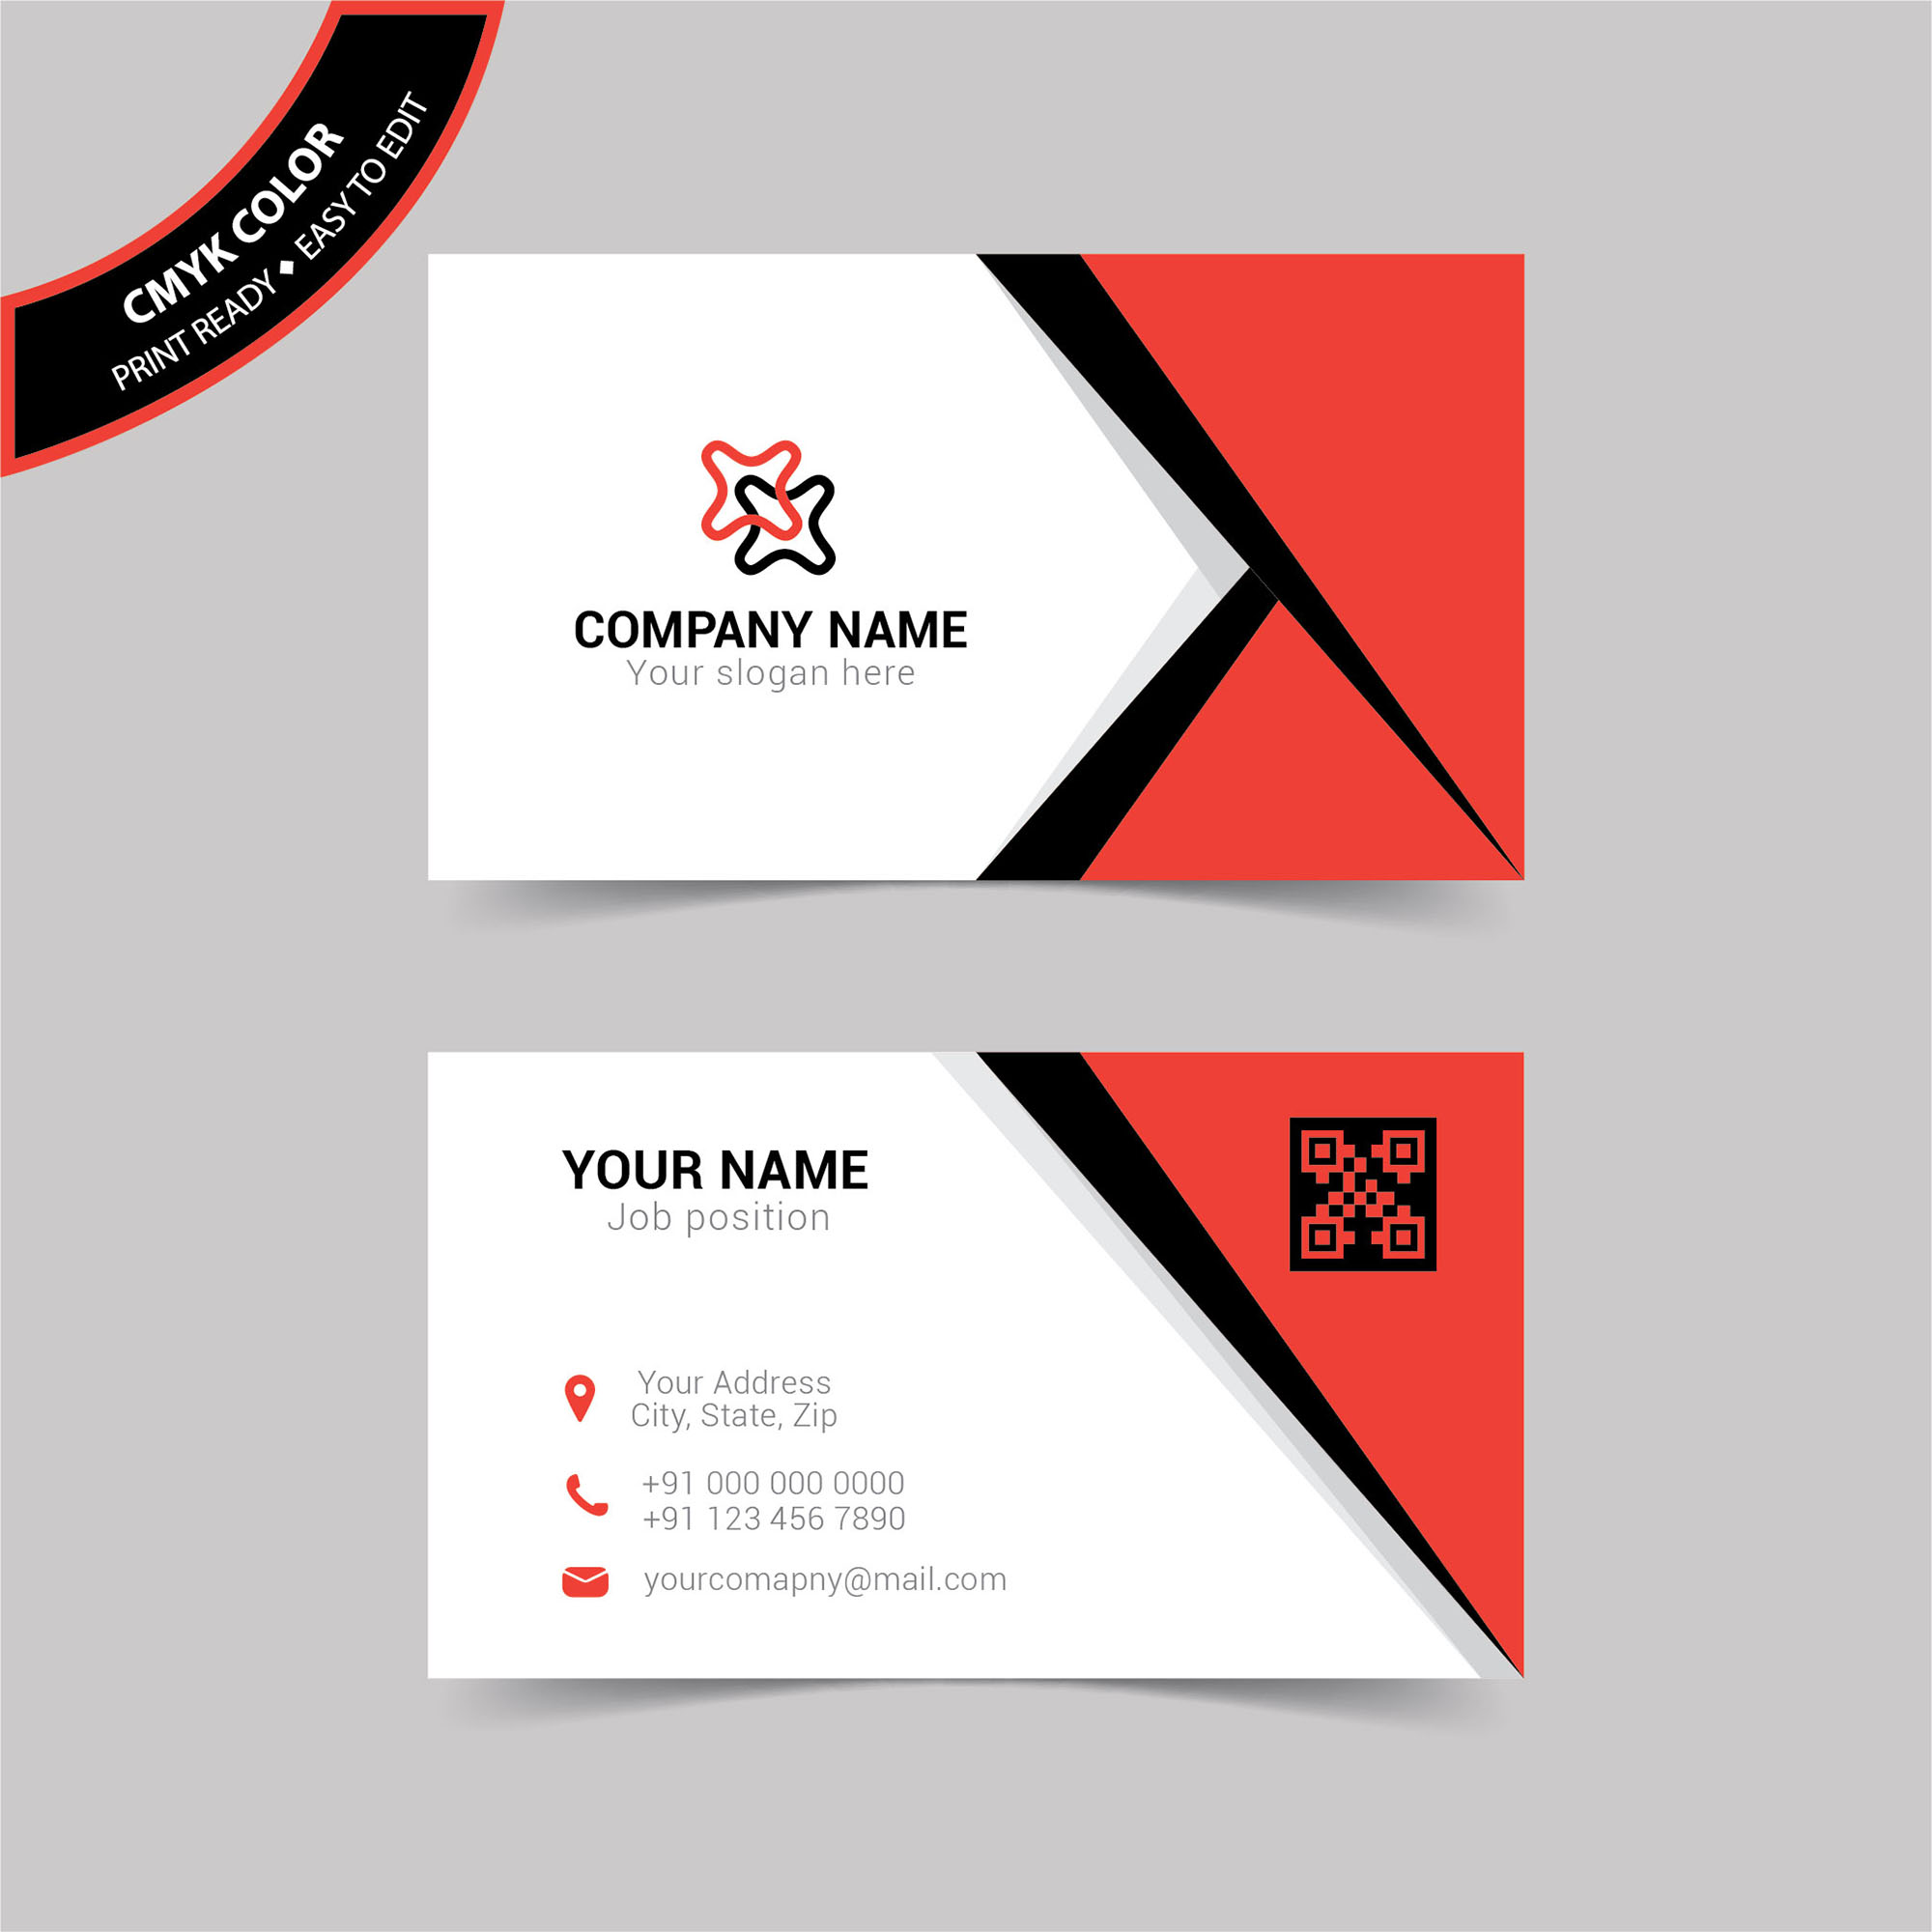 Simple corporate business card free download wisxi business card business cards business card design business card template design templates flashek